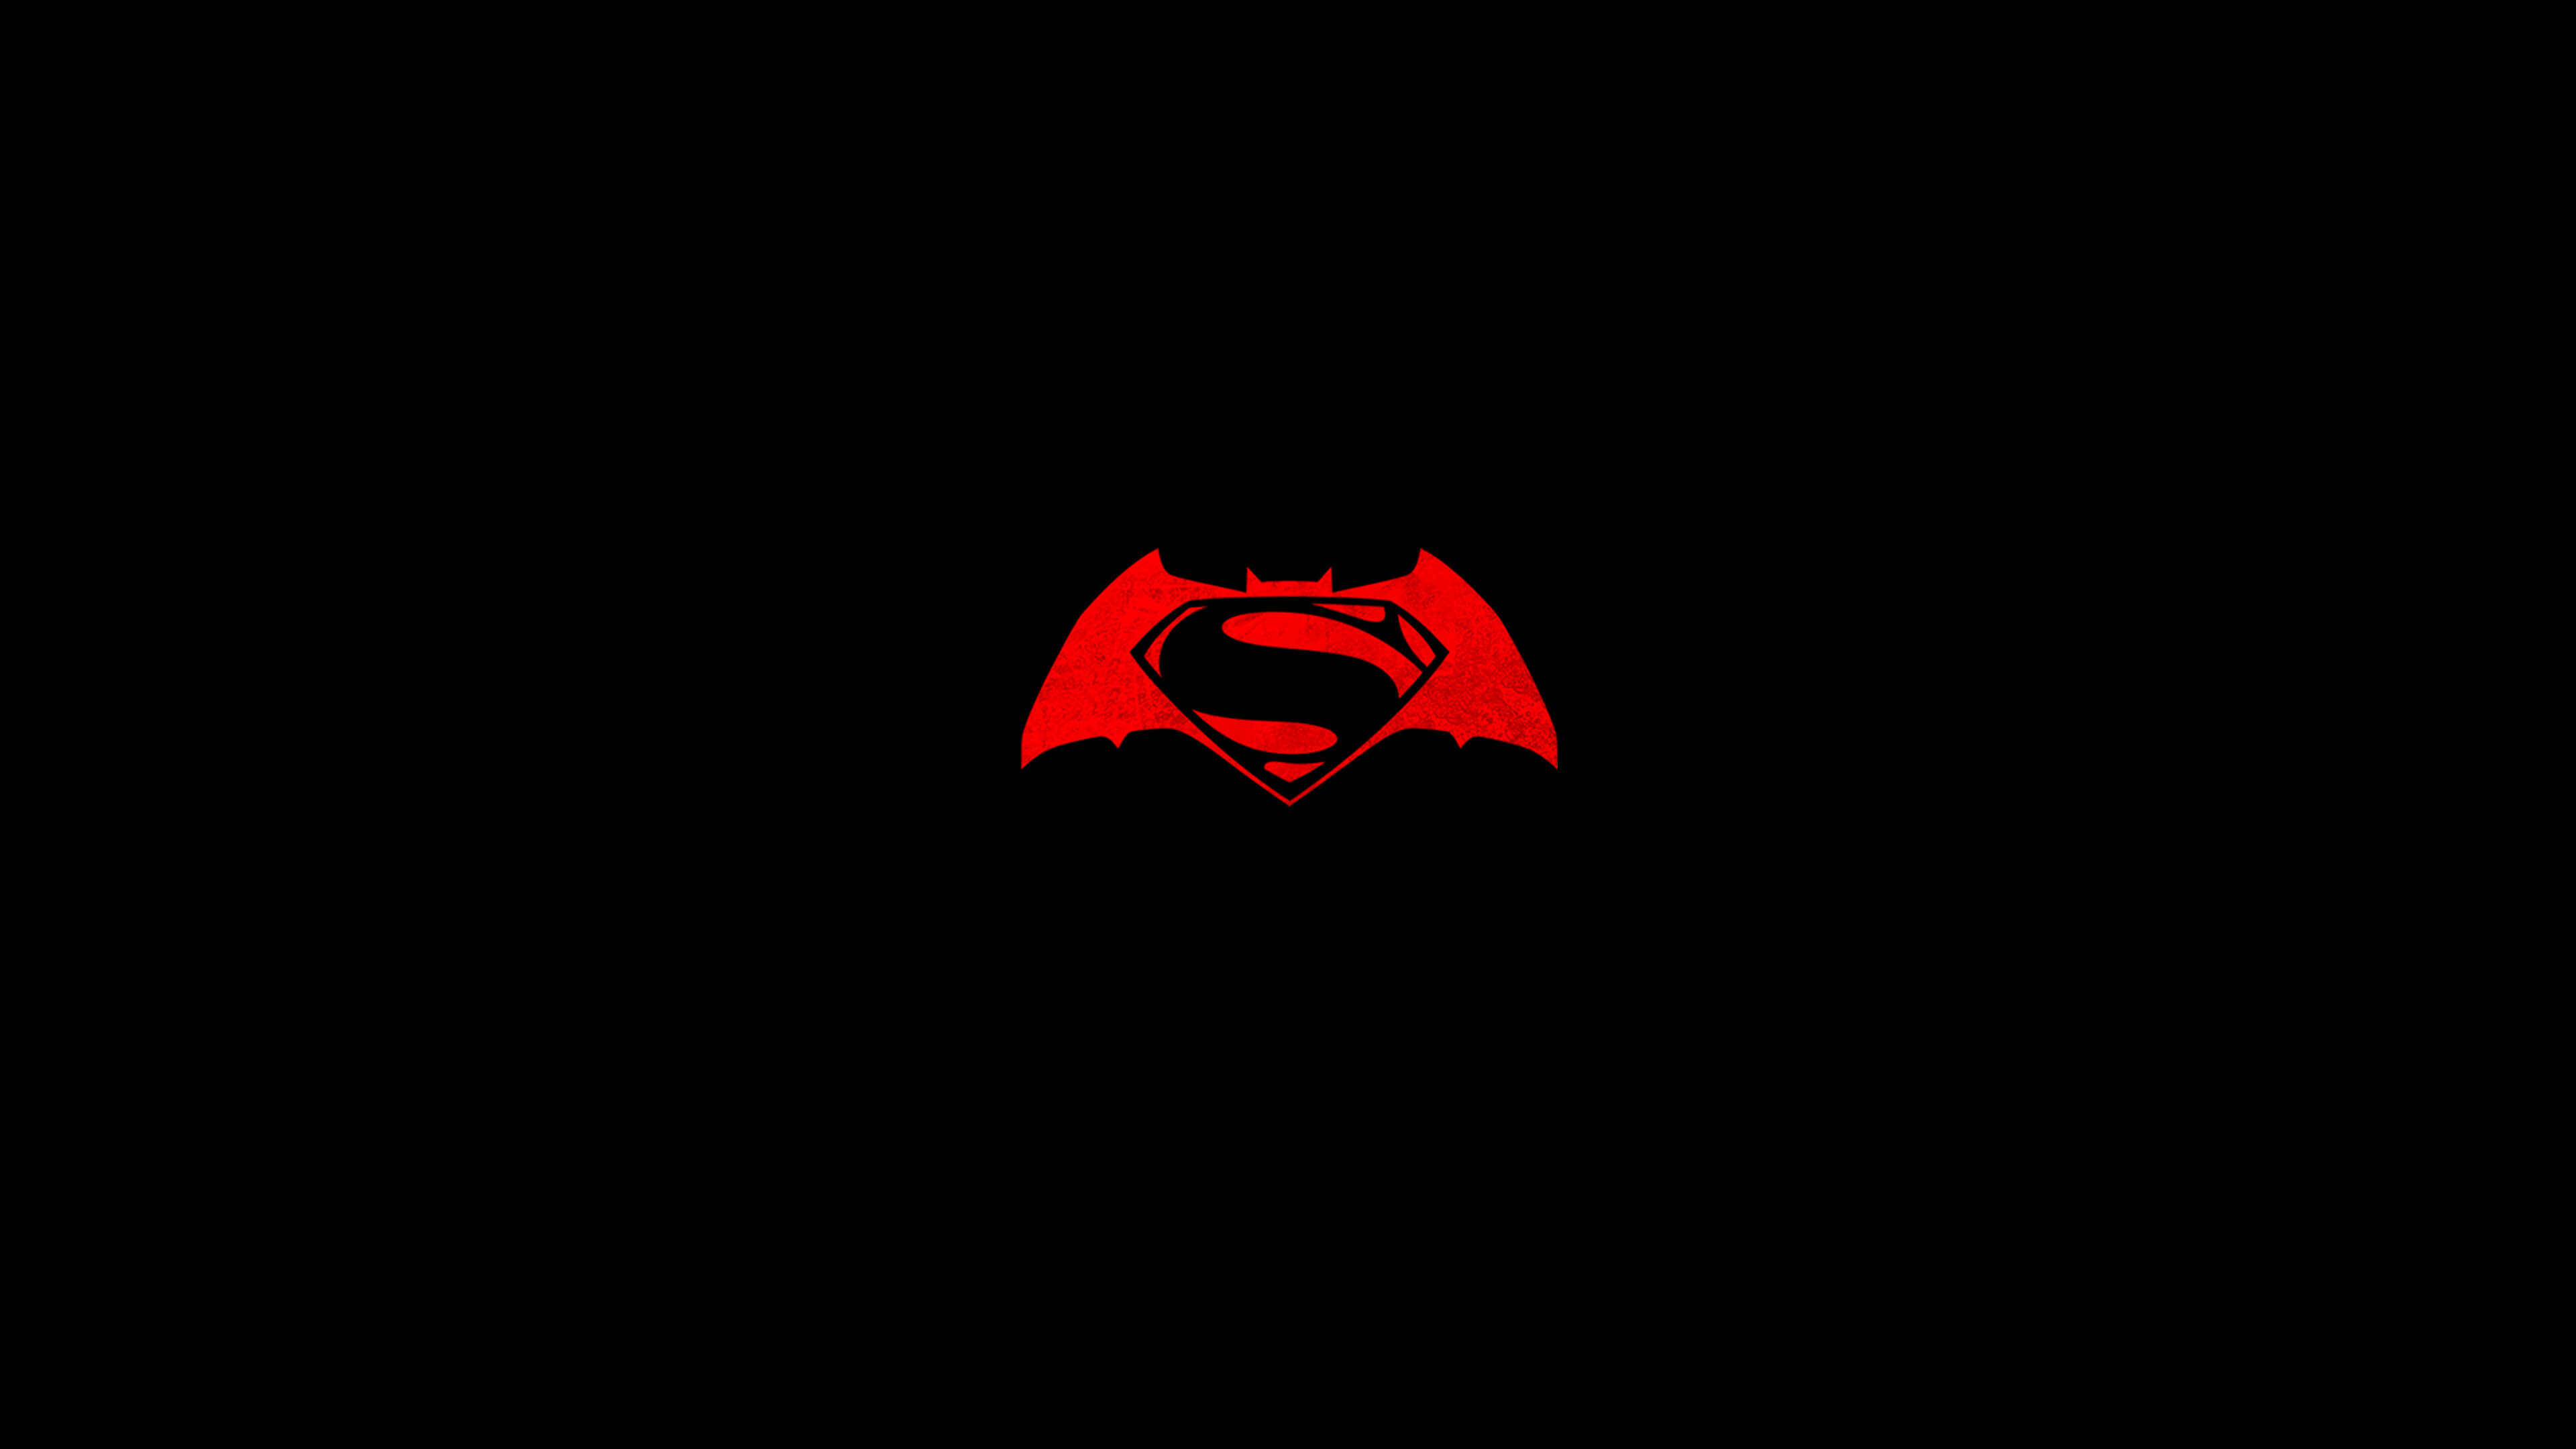 Batman V Superman Logo 4k Wallpaper